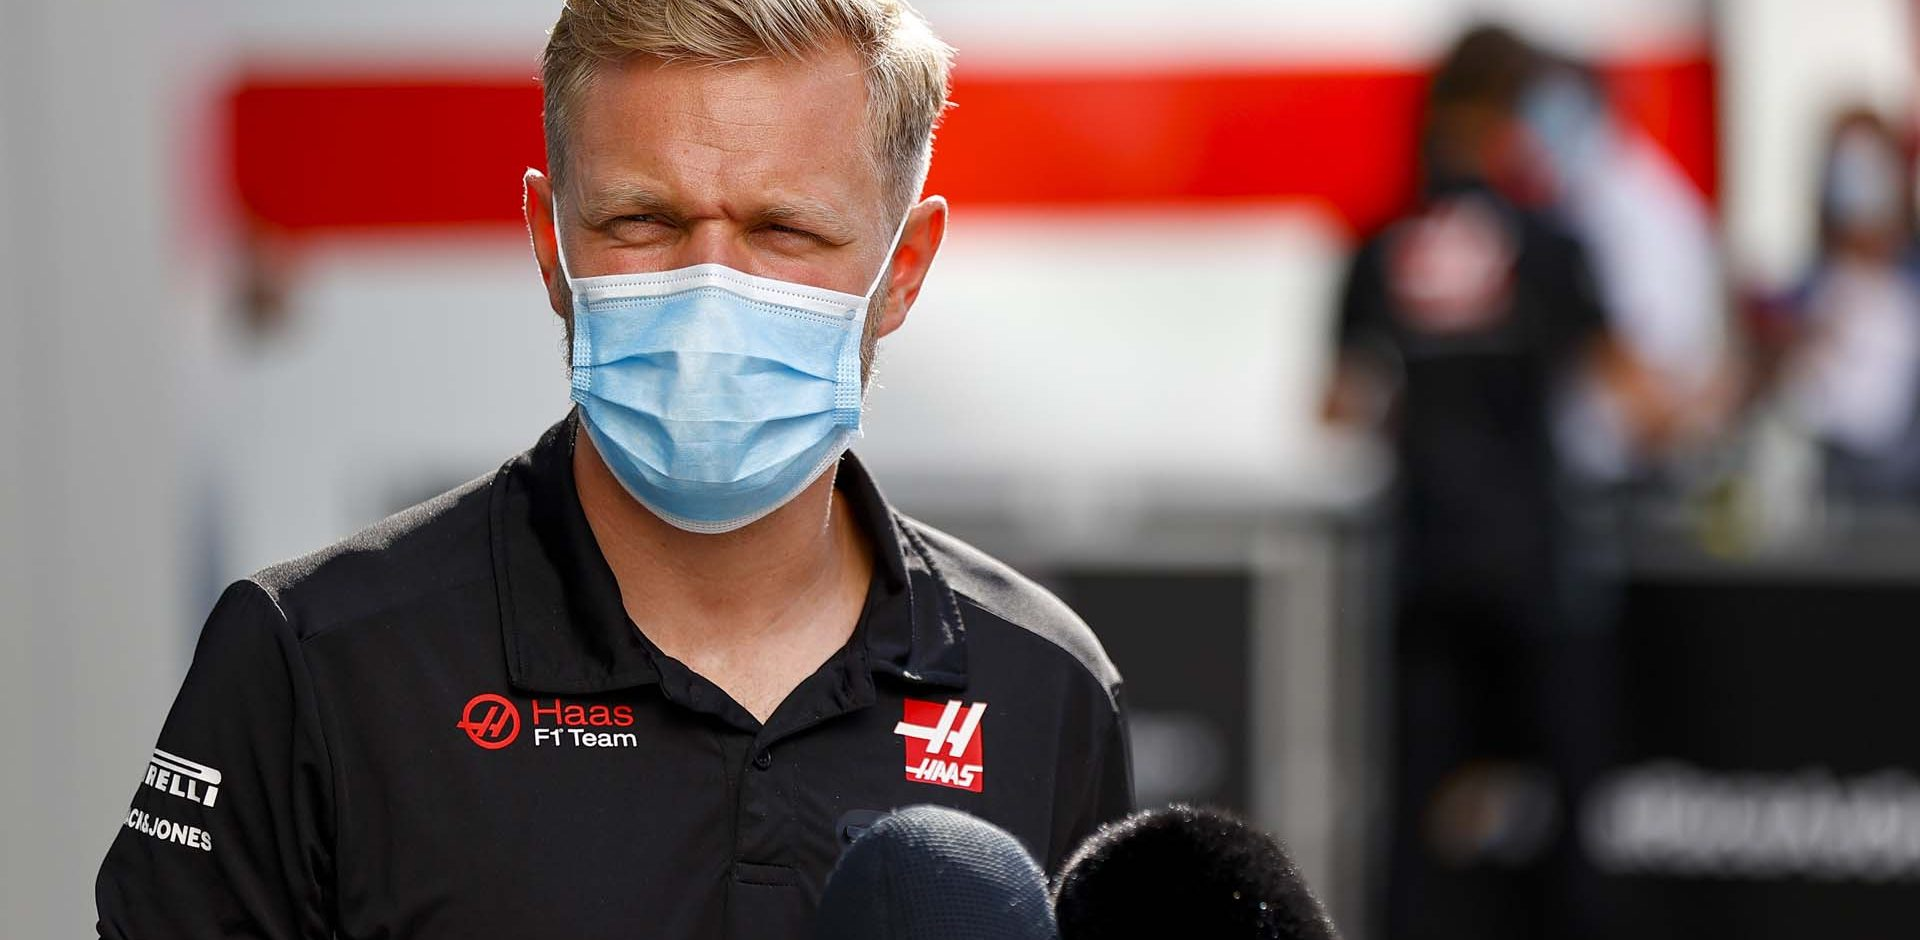 SOCHI AUTODROM, RUSSIAN FEDERATION - SEPTEMBER 24: Kevin Magnussen, Haas F1 speak to the media during the Russian GP at Sochi Autodrom on Thursday September 24, 2020 in Sochi, Russian Federation. (Photo by Andy Hone / LAT Images)